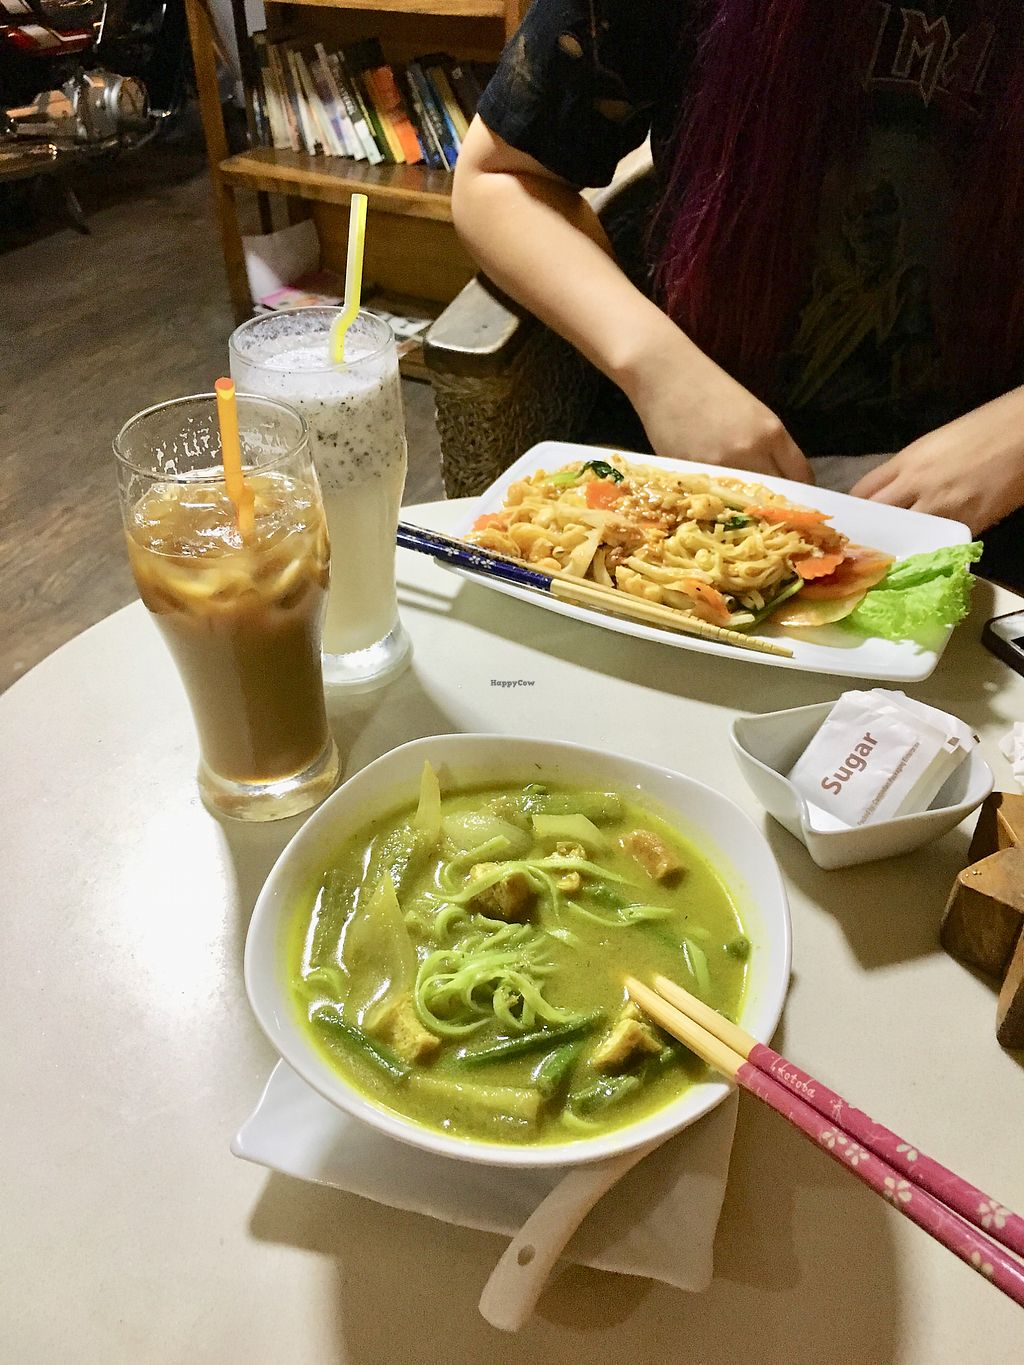 """Photo of Cafe Soleil  by <a href=""""/members/profile/CamilaSilvaL"""">CamilaSilvaL</a> <br/>Curry with noodles and vegetarian noodles w/eggs and veggies  <br/> January 31, 2018  - <a href='/contact/abuse/image/33811/353248'>Report</a>"""